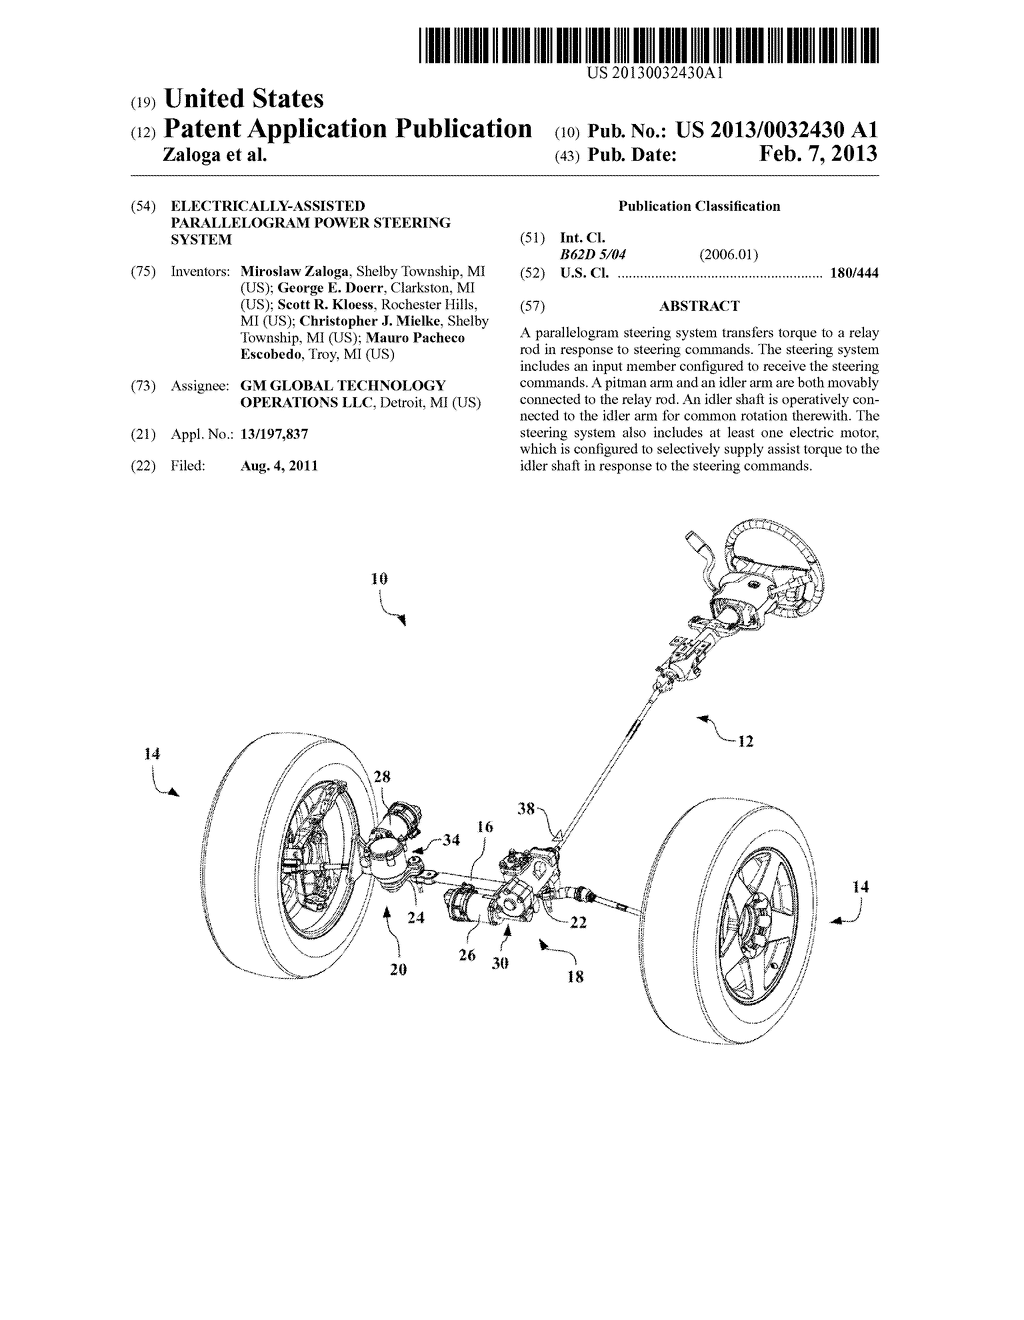 ELECTRICALLY-ASSISTED PARALLELOGRAM POWER STEERING SYSTEM - diagram, schematic, and image 01